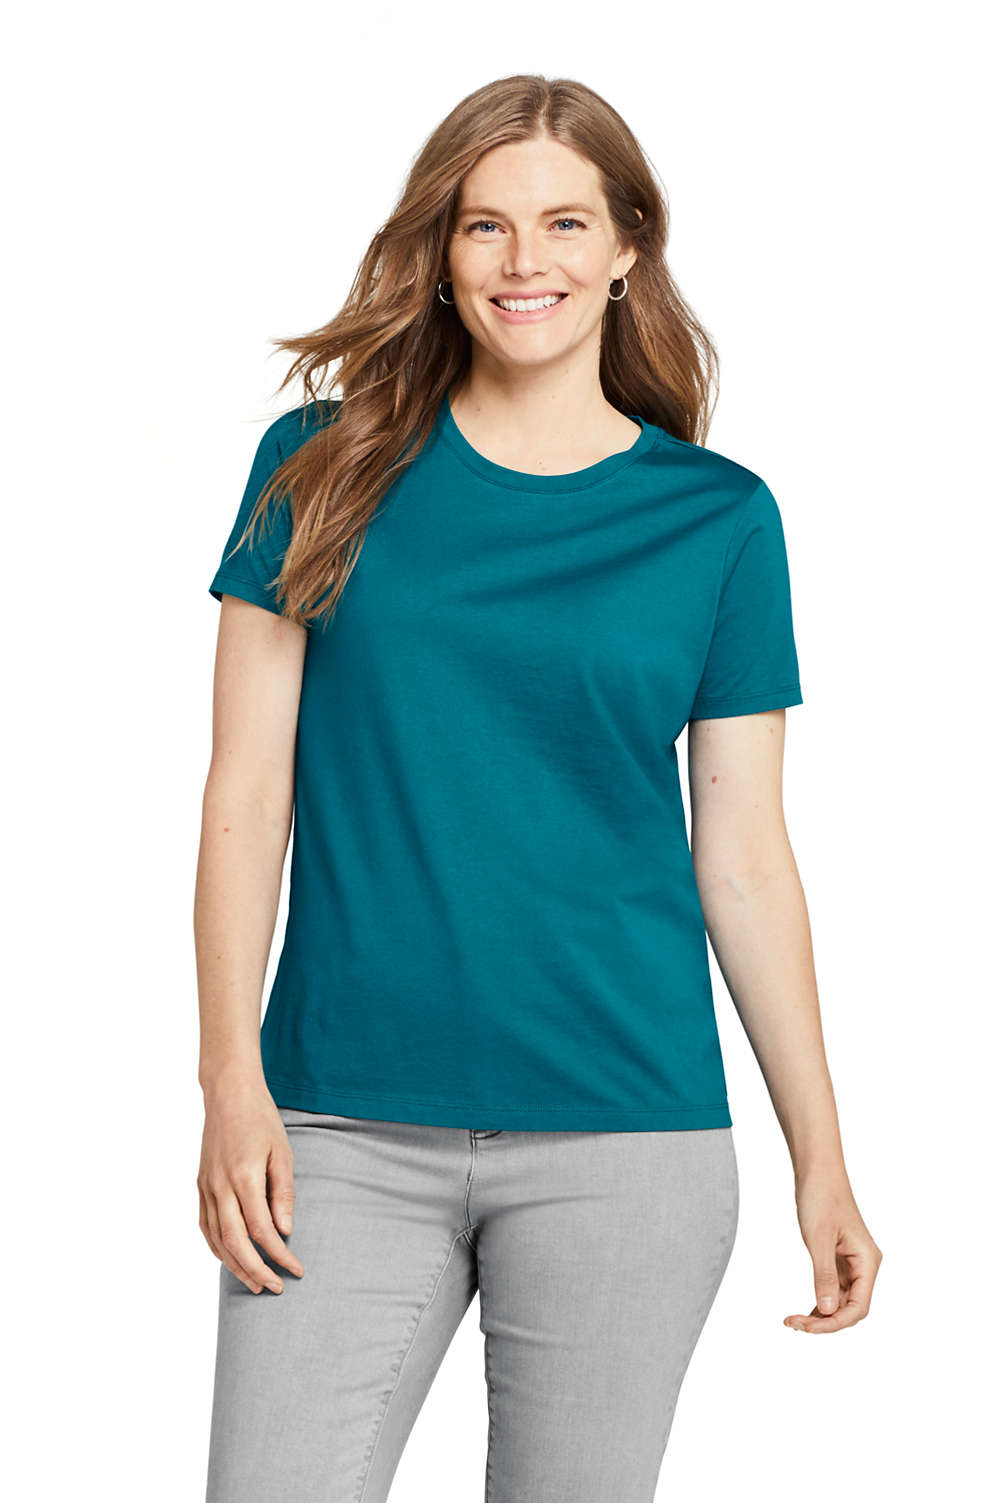 6f64bf79f5 Women's Relaxed Supima Cotton Short Sleeve Crewneck T-Shirt from Lands' End